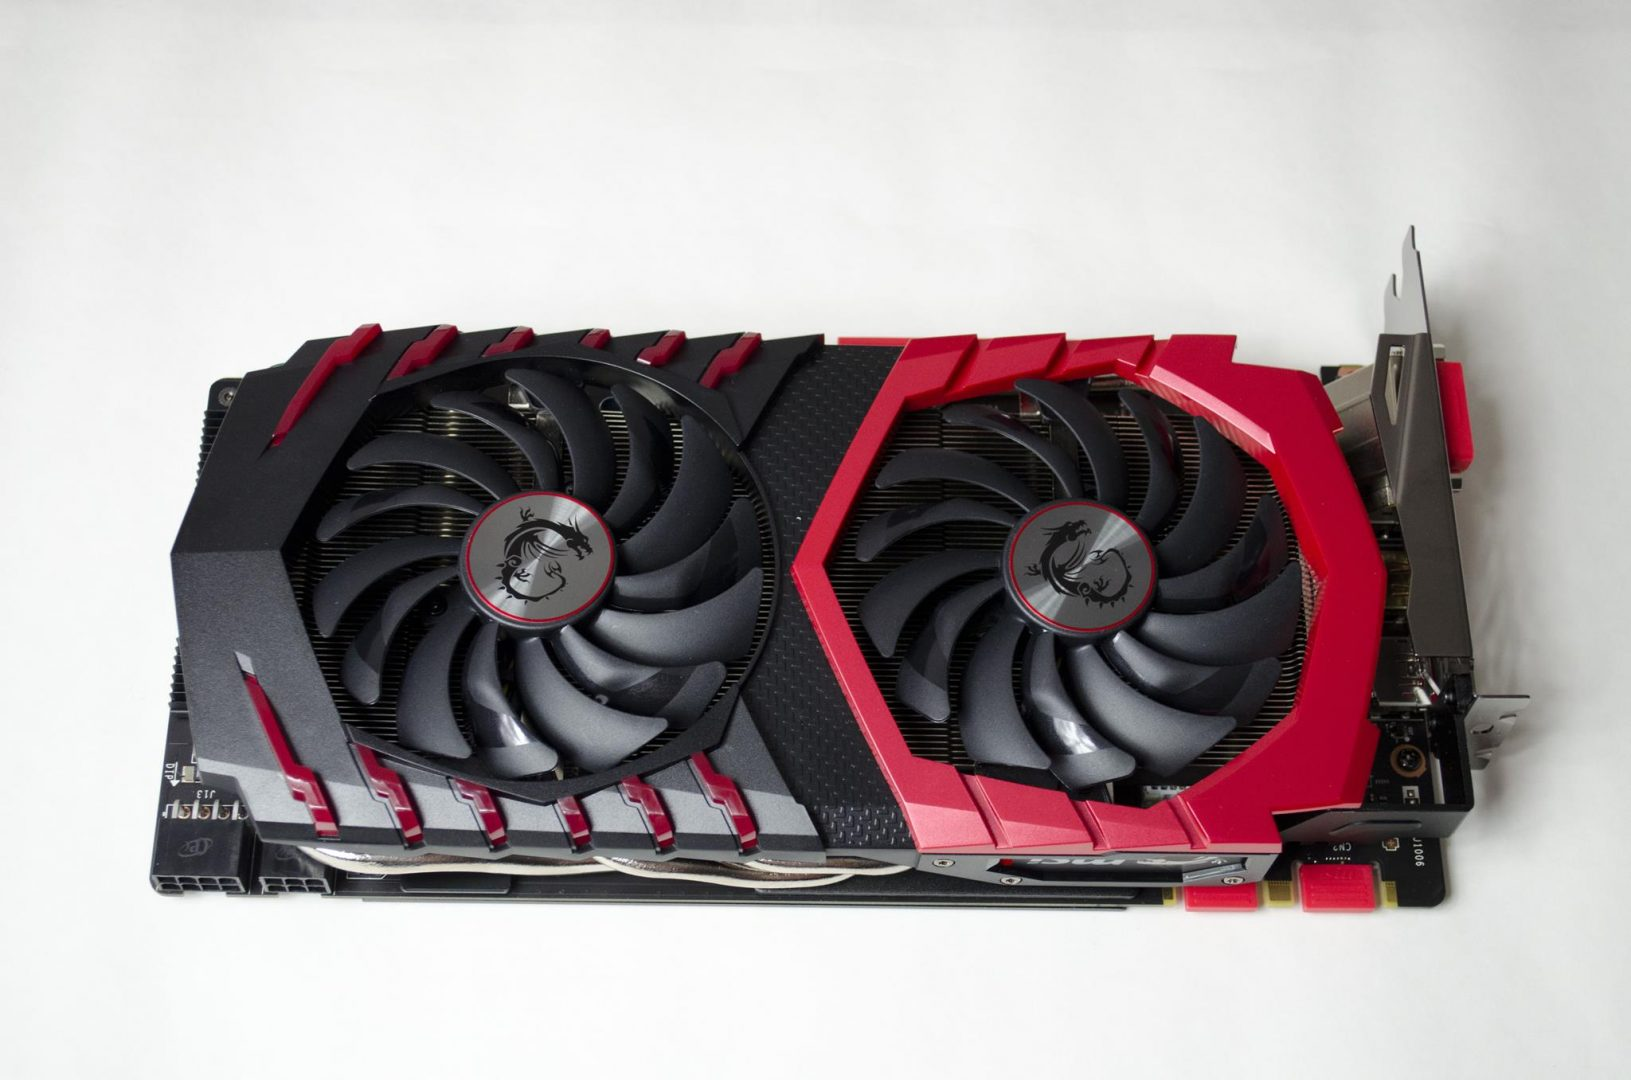 MSI geforce GTX 1070 gaming x 8gb gpu review_10